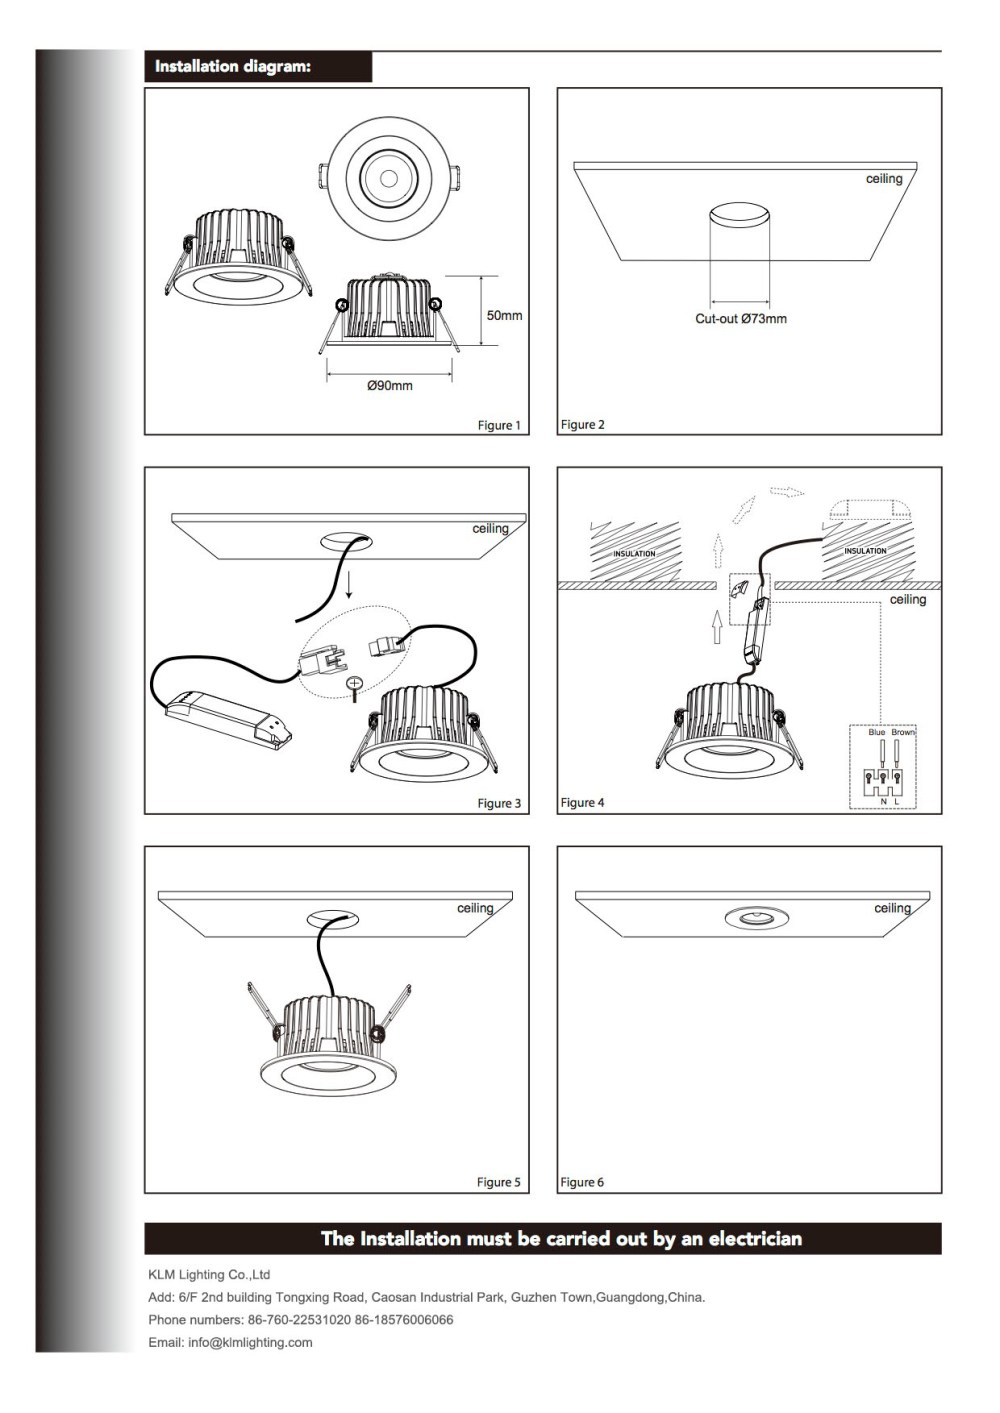 medium resolution of downlight wiring instructions wiring diagram go led light installation guide led light manufacturer downlight wiring instructions